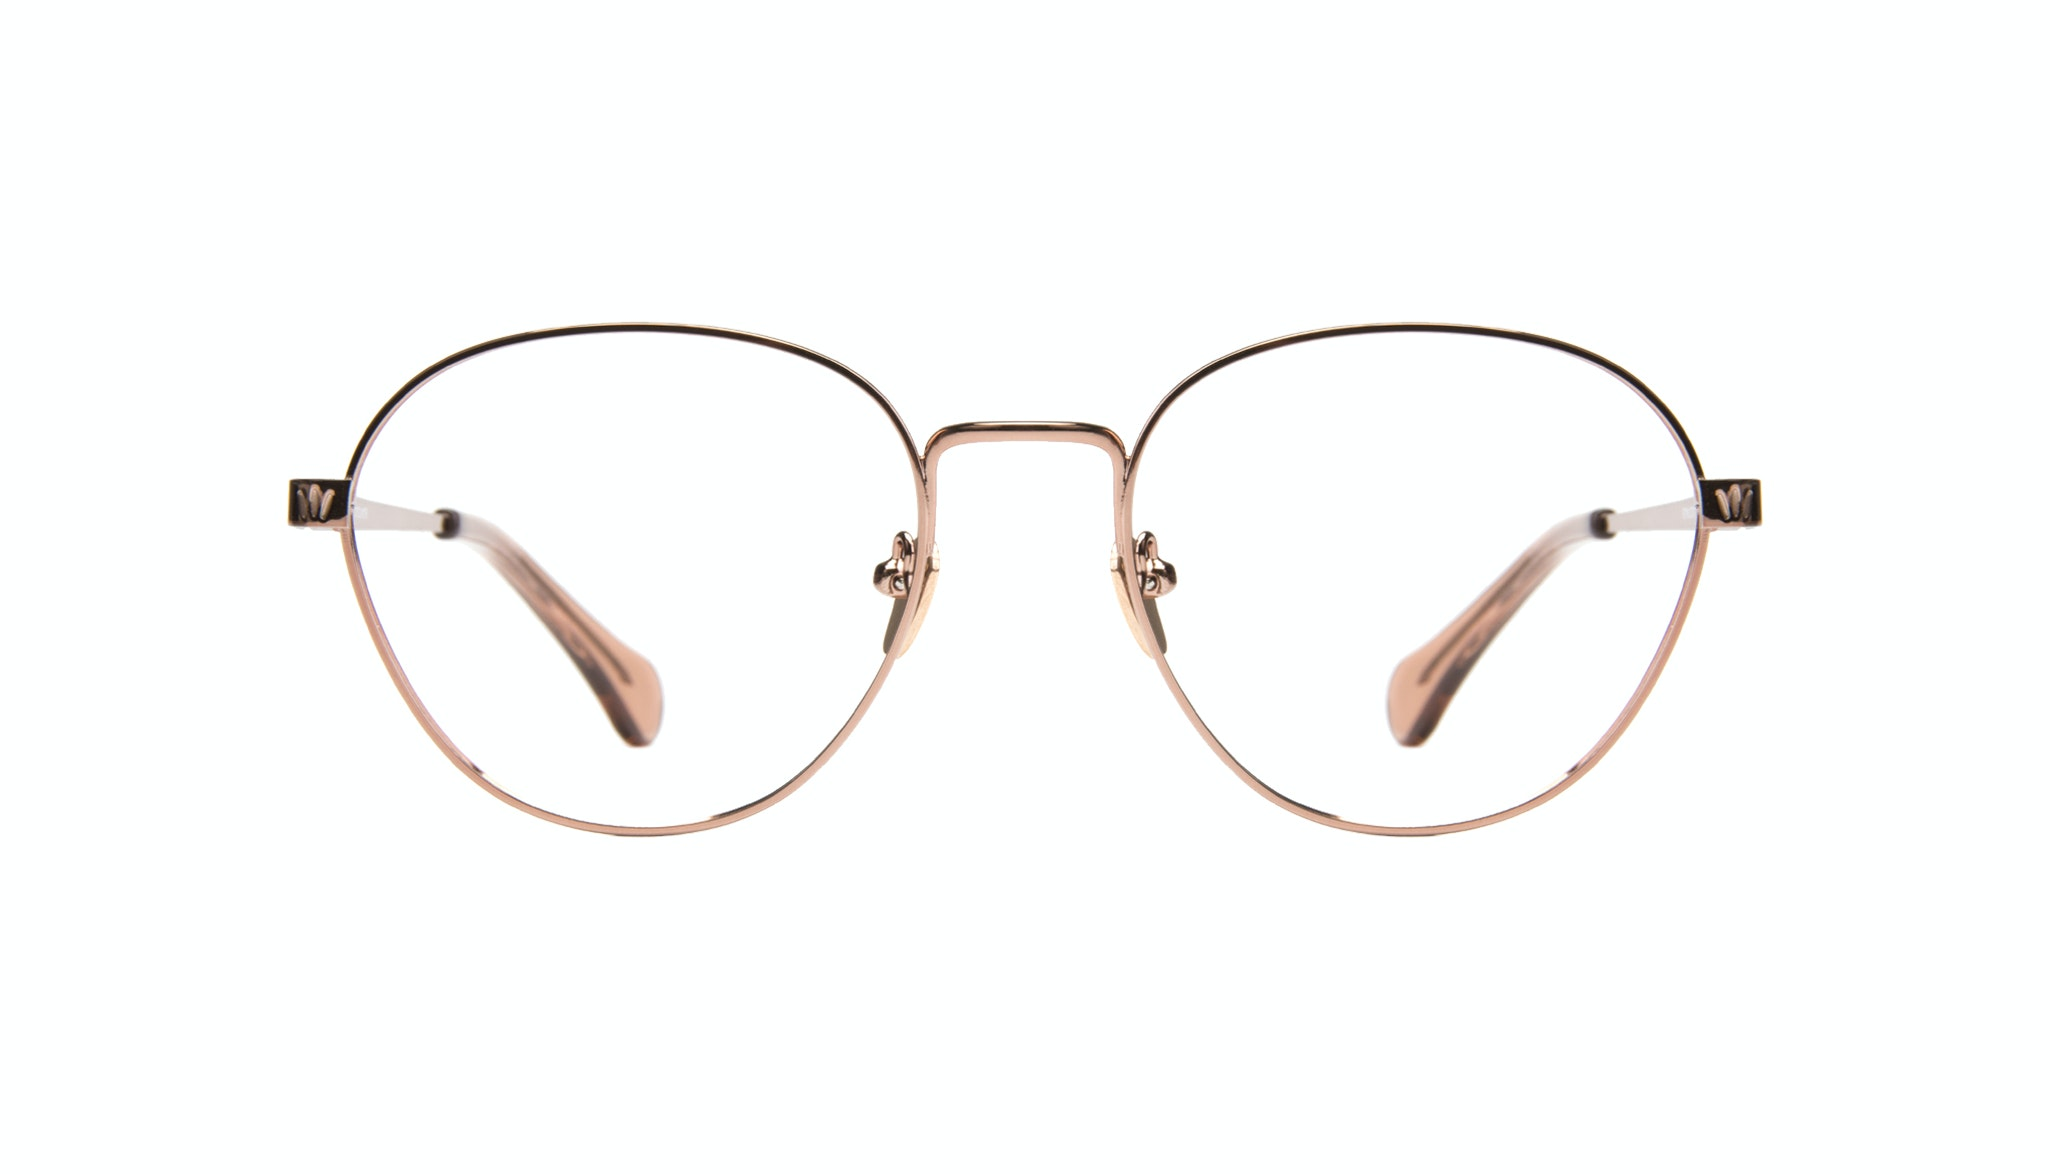 Affordable Fashion Glasses Round Eyeglasses Women Brace Rose Gold